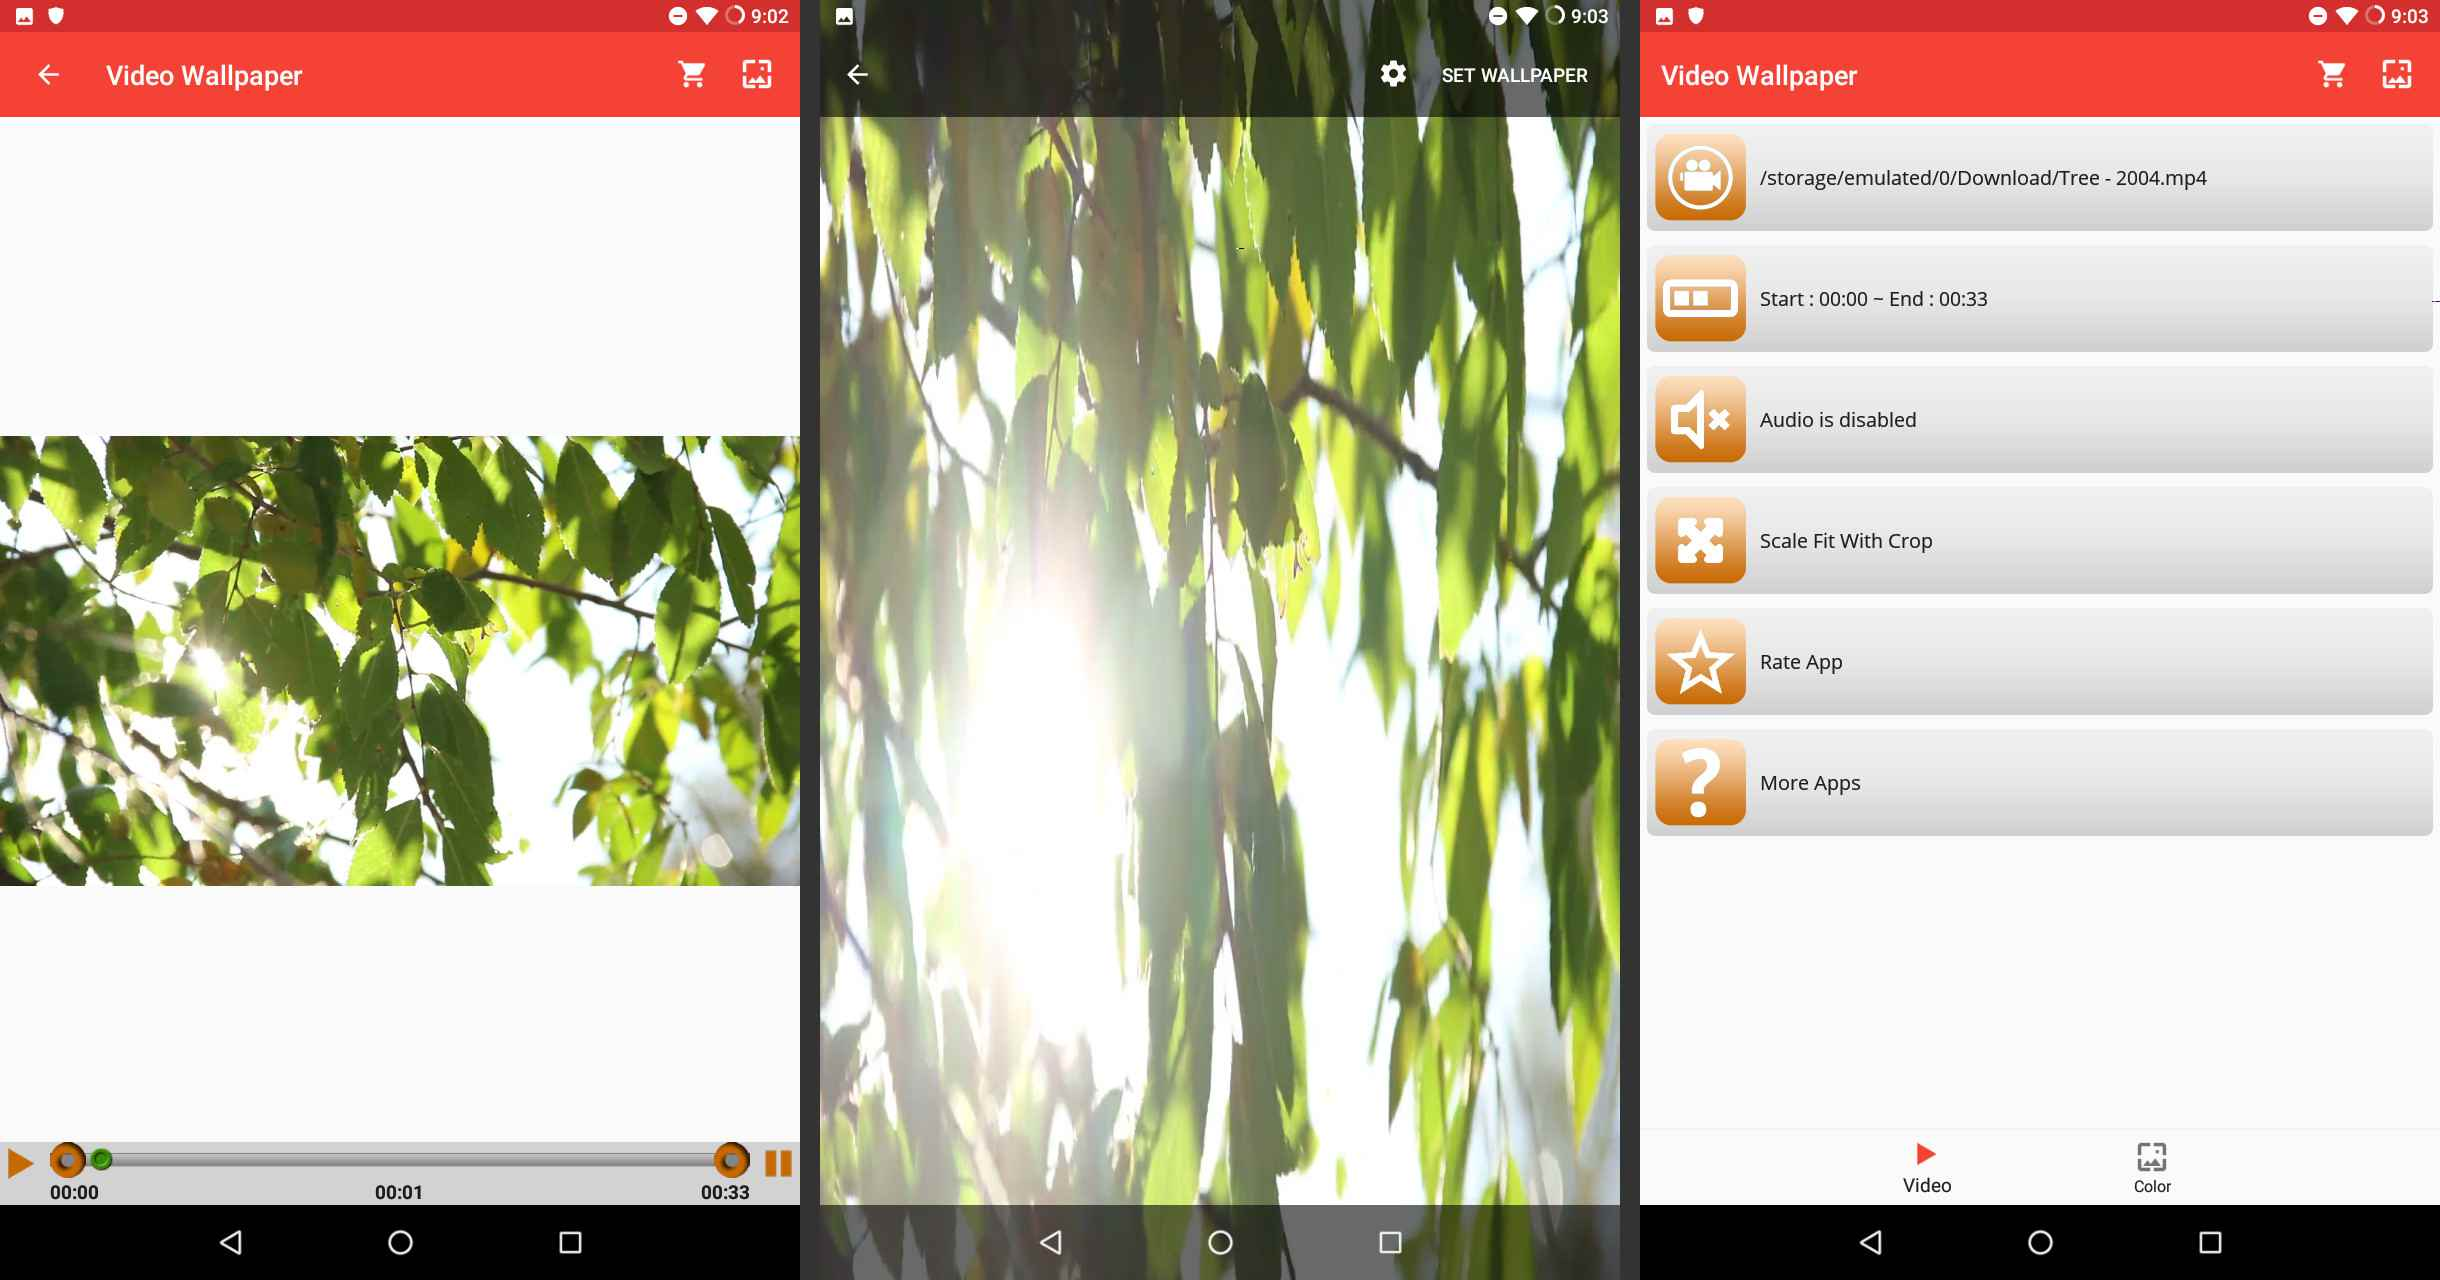 Android Video Live Wallpaper change video settings